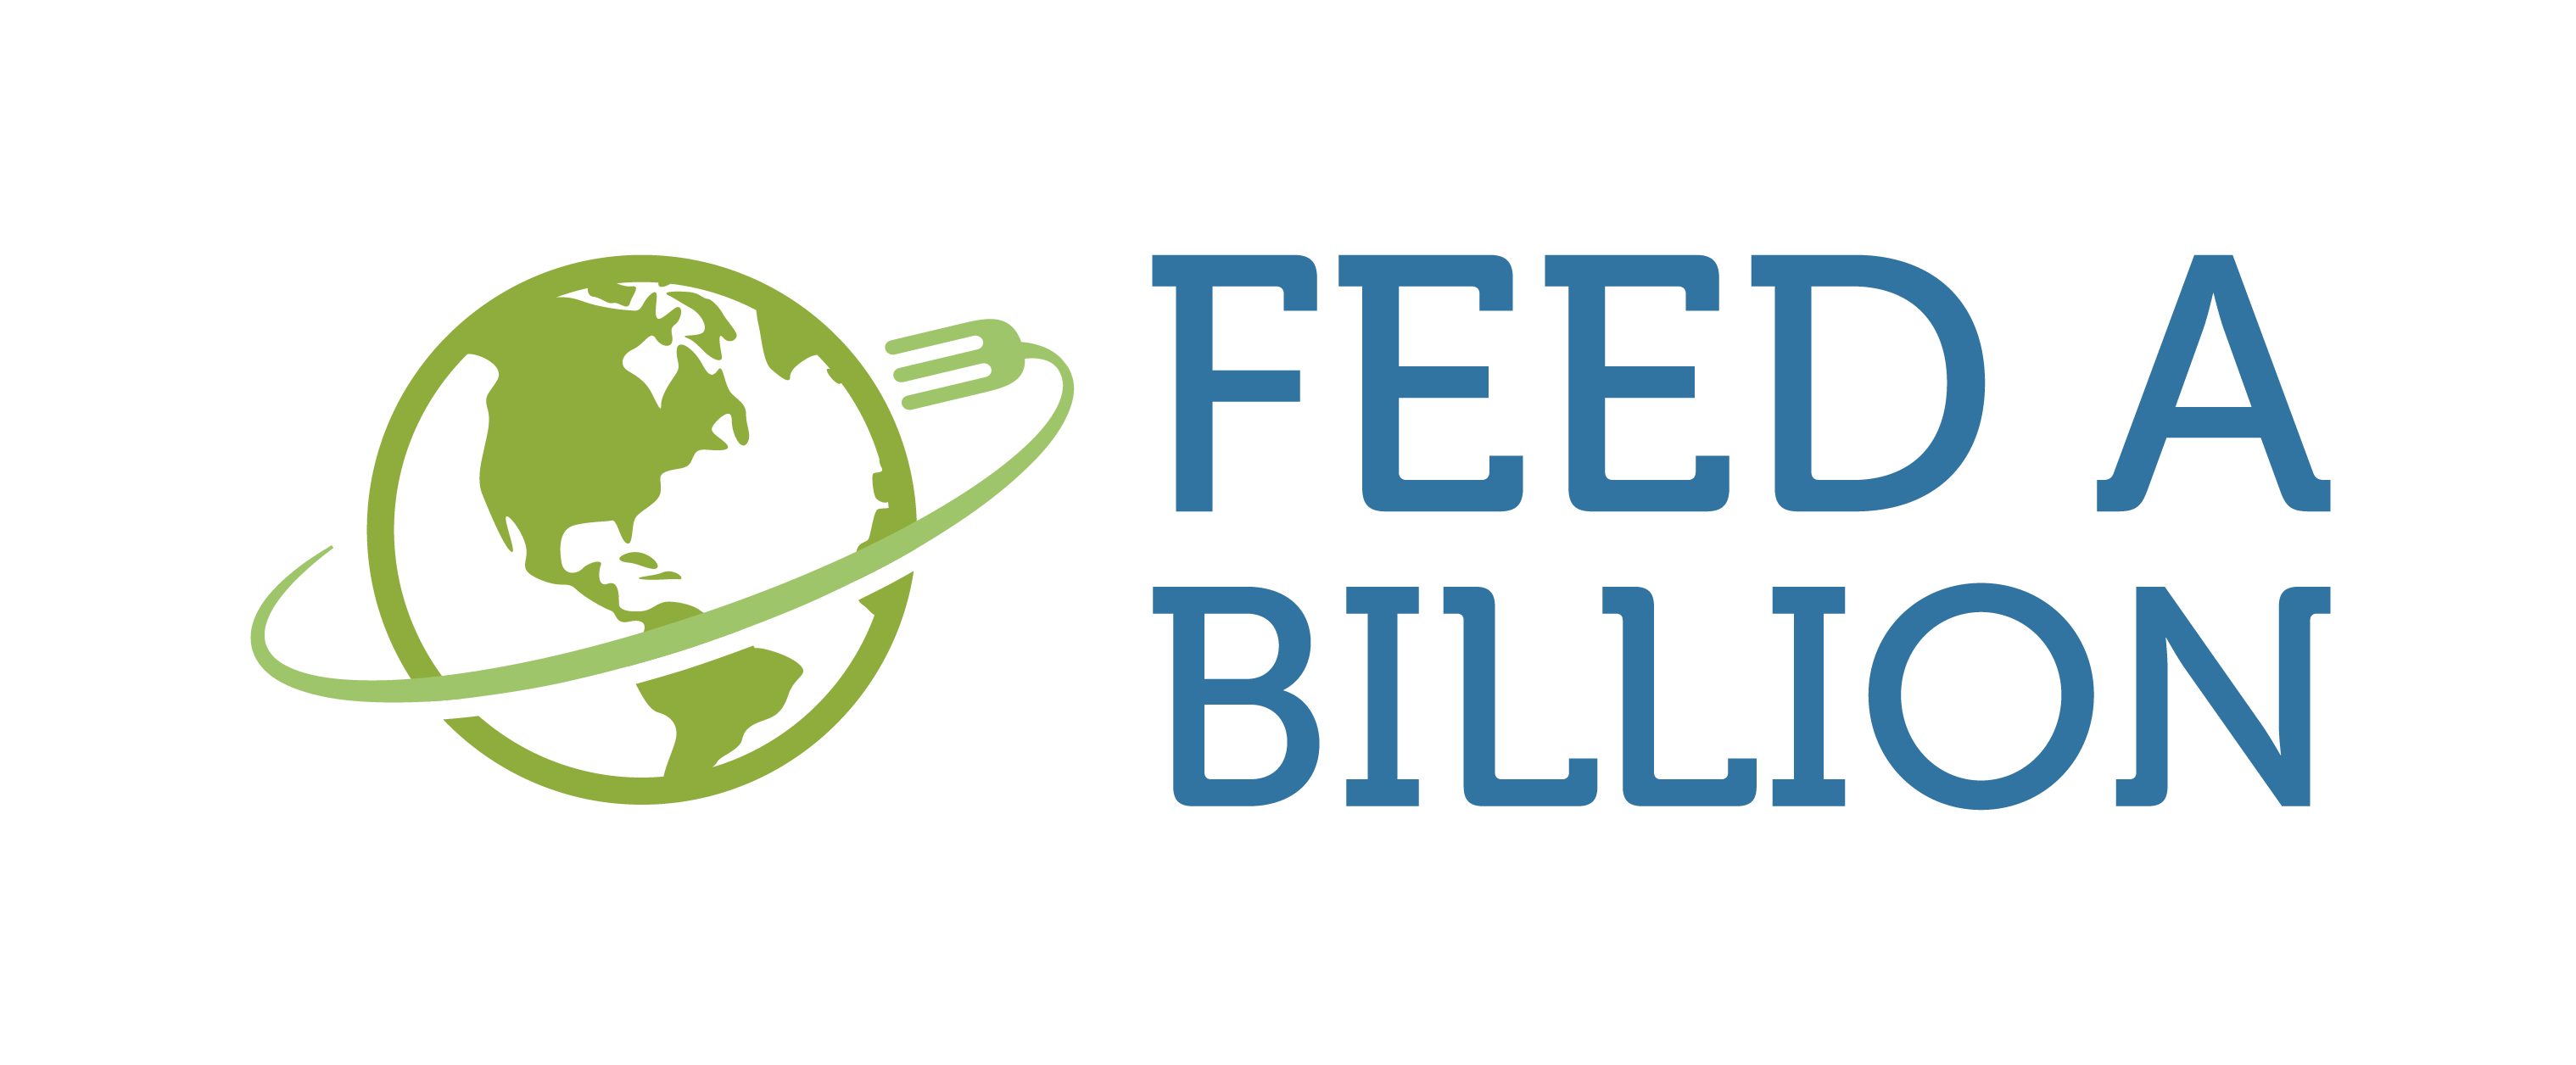 Feed a Billion